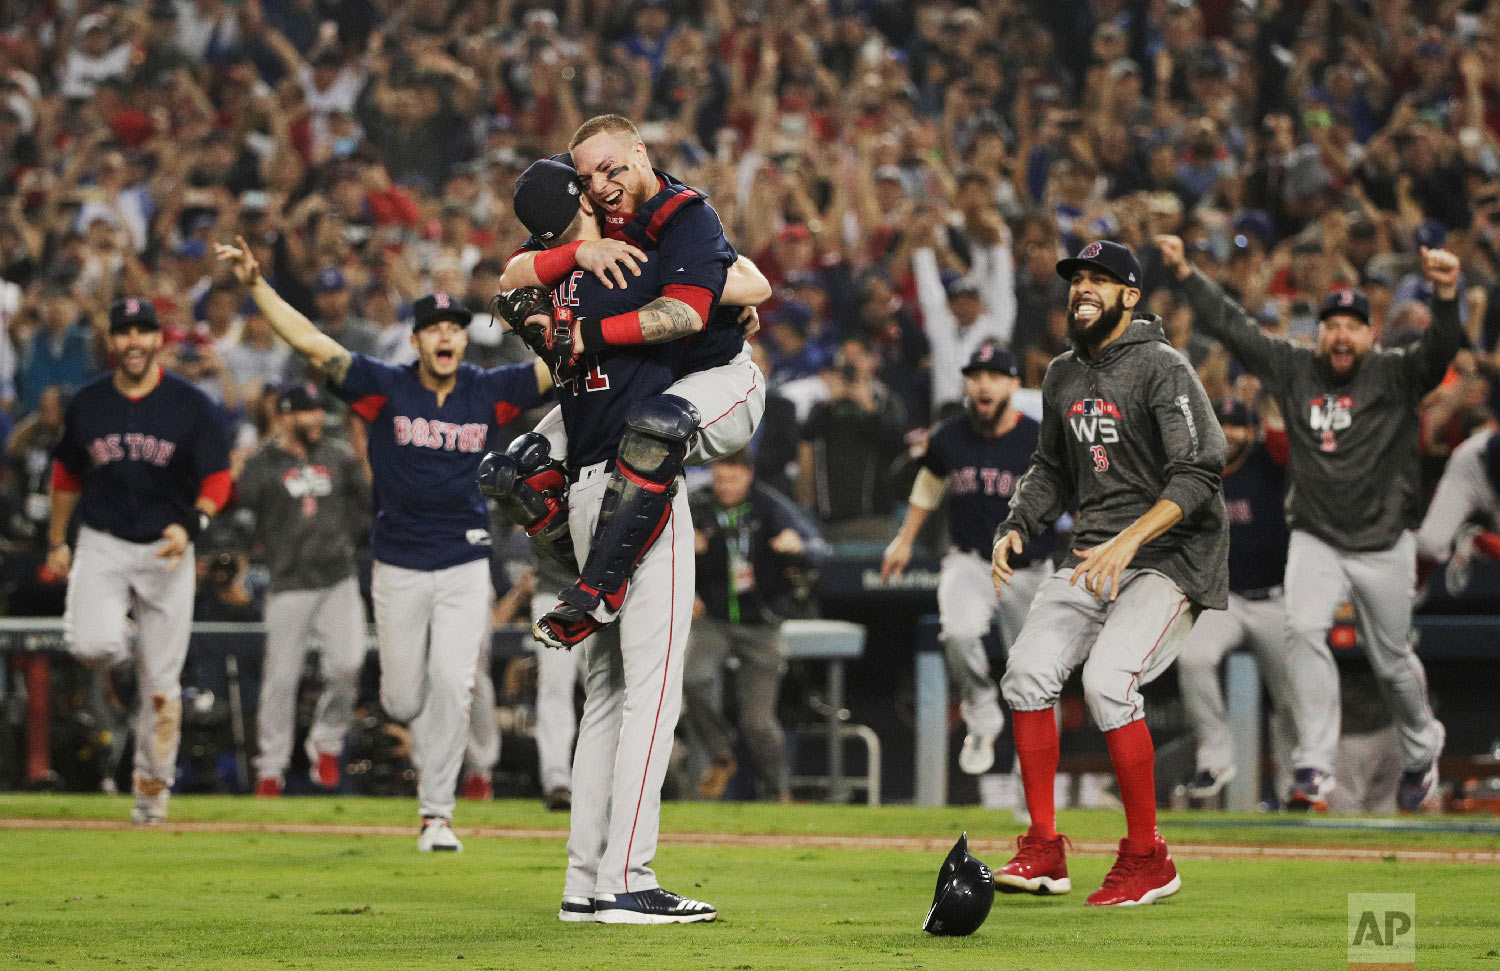 The Boston Red Sox celebrate after Game 5 of baseball's World Series against the Los Angeles Dodgers on Oct. 28, 2018, in Los Angeles. The Red Sox won the game 5-1 to win the series 4 games to 1. (AP Photo/Jae C. Hong)